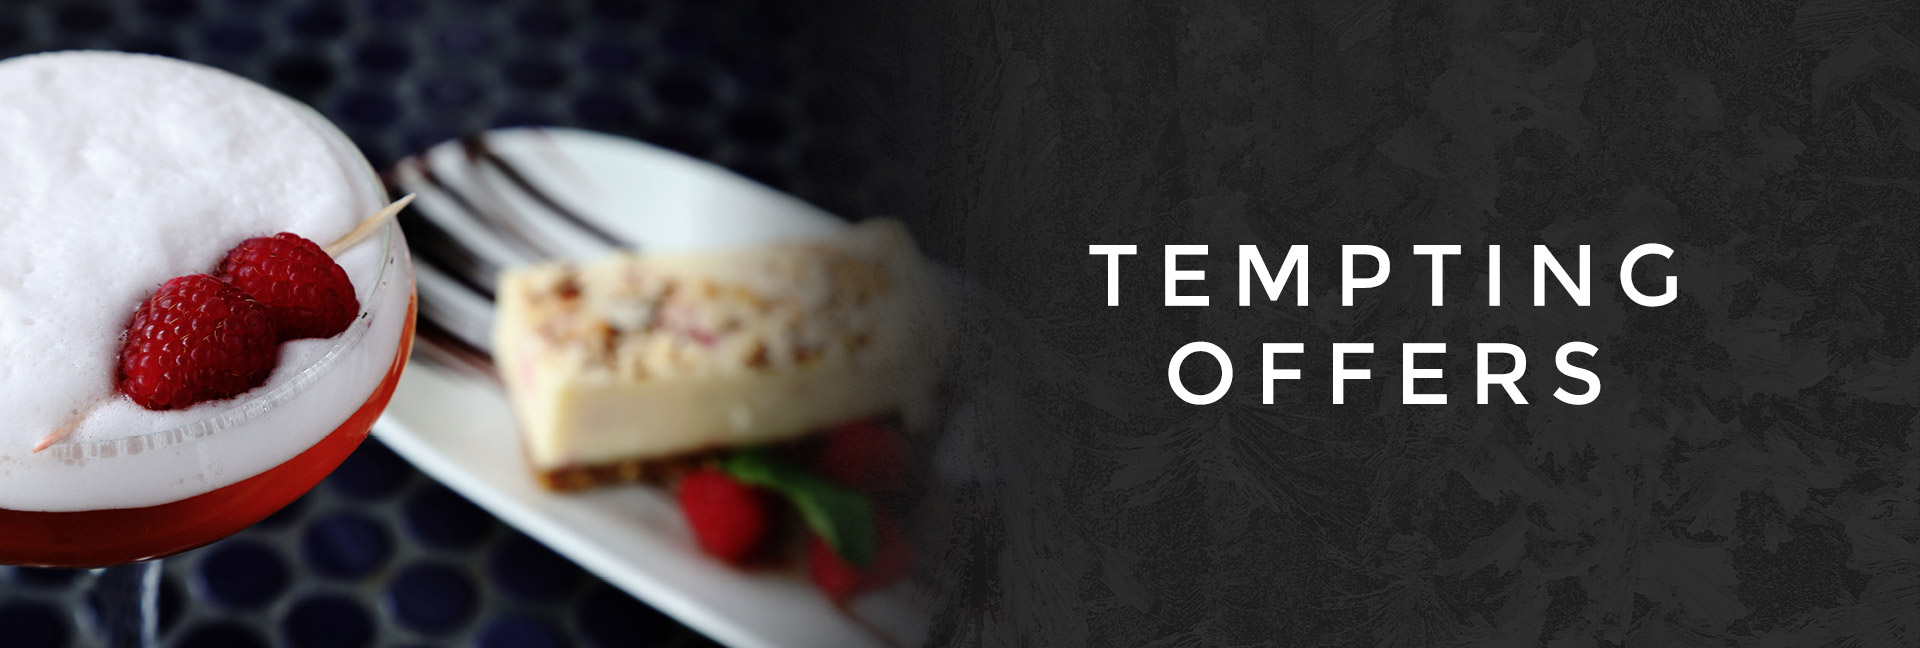 Temping offers at All Bar One Millennium Square Leeds